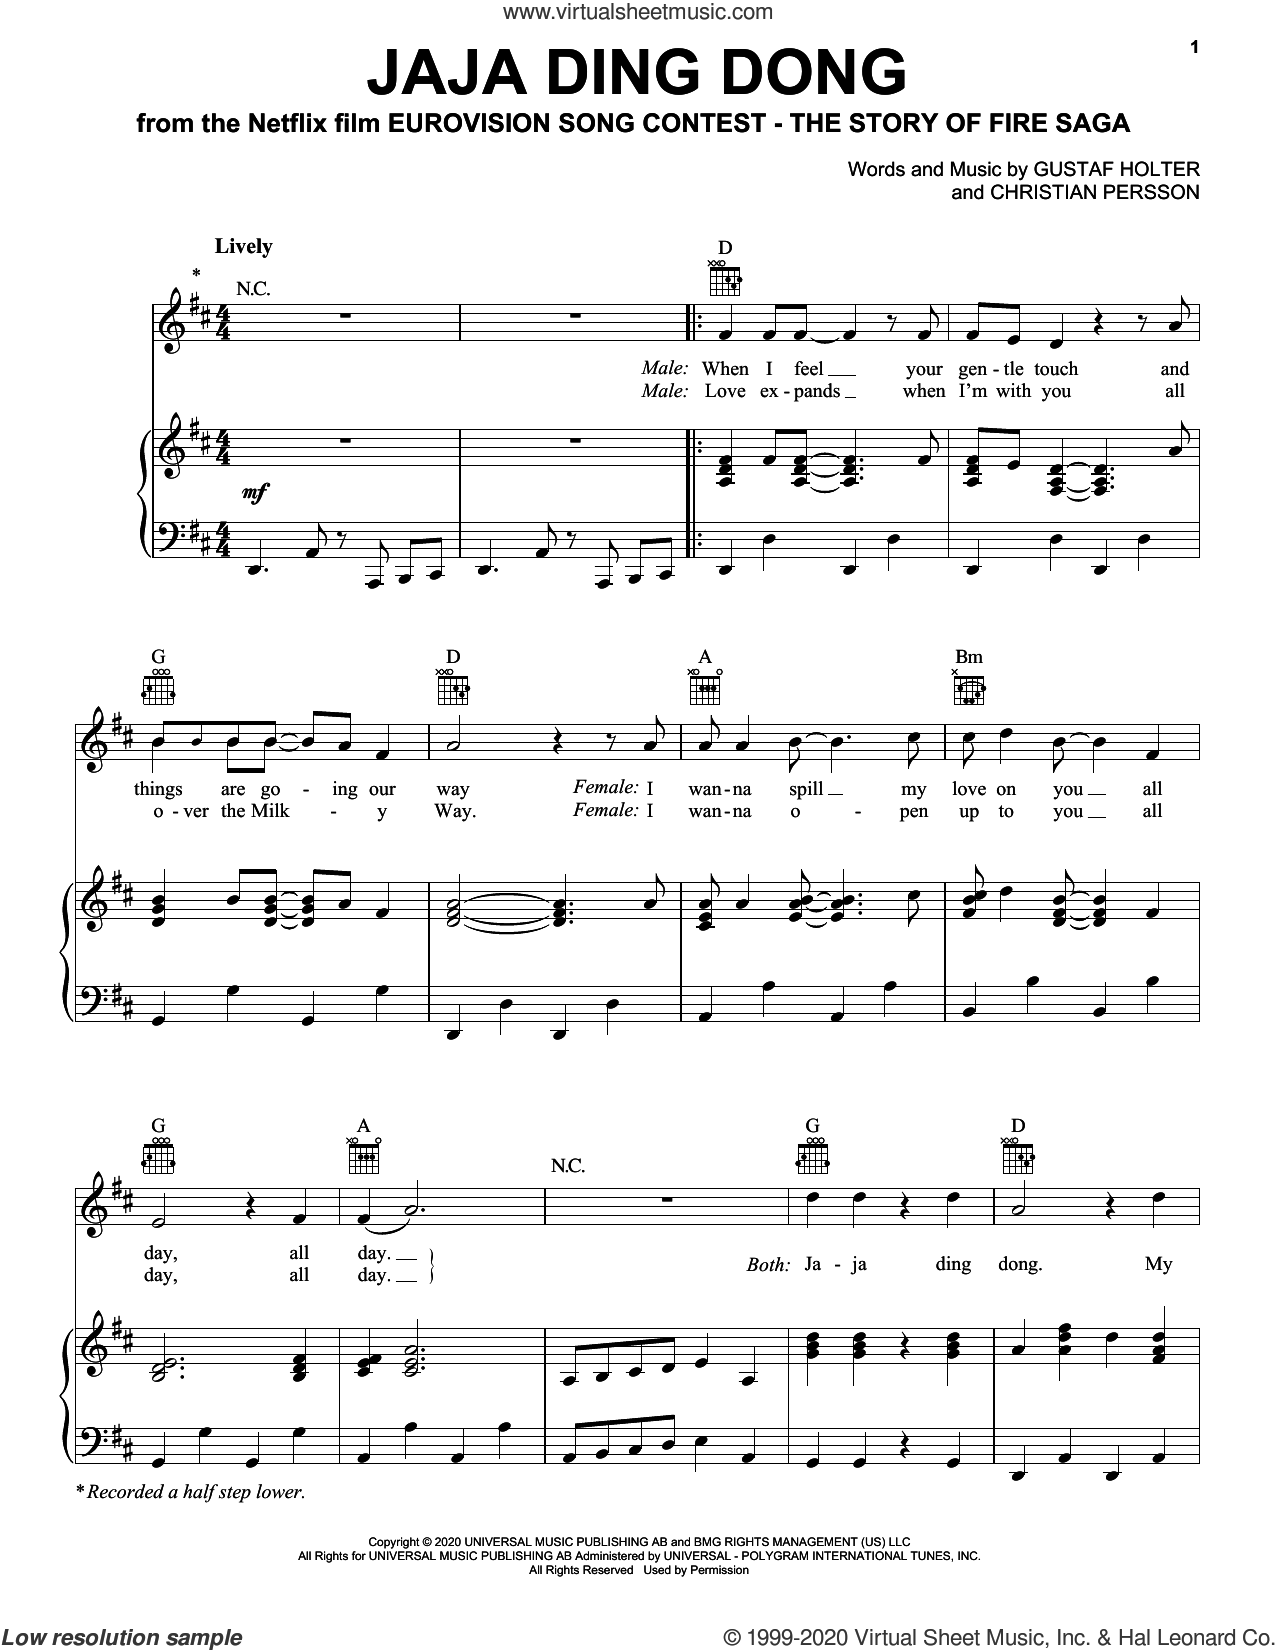 Jaja Ding Dong (from Eurovision Song Contest: The Story of Fire Saga) sheet music for voice, piano or guitar by Will Ferrell & My Marianne, Christian Persson and Gustaf Holter, intermediate skill level